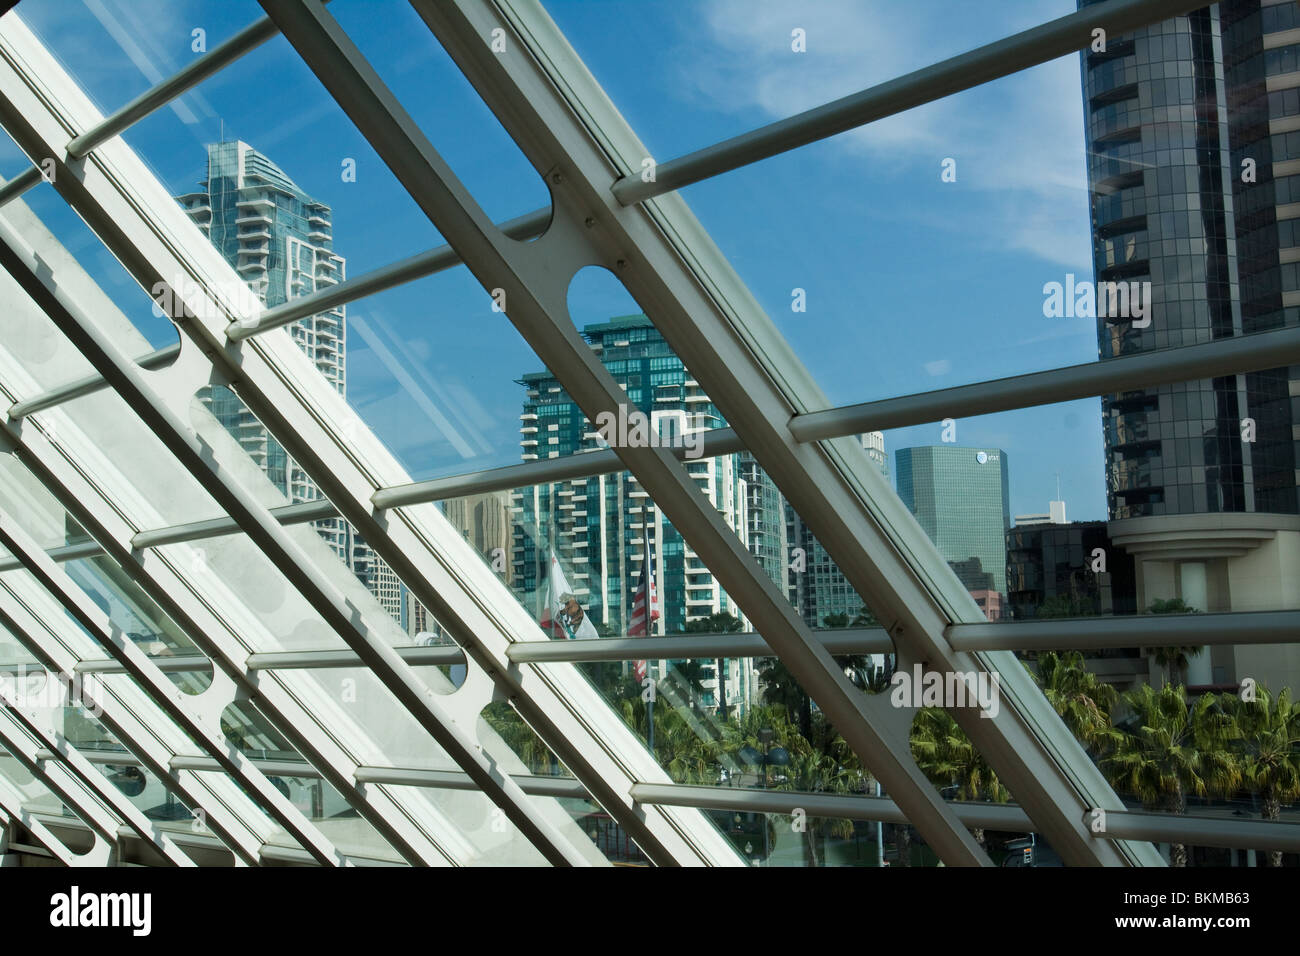 Buildings in downtown San Diego as seen through slanted glass wall in San Diego Convention Center - Stock Image